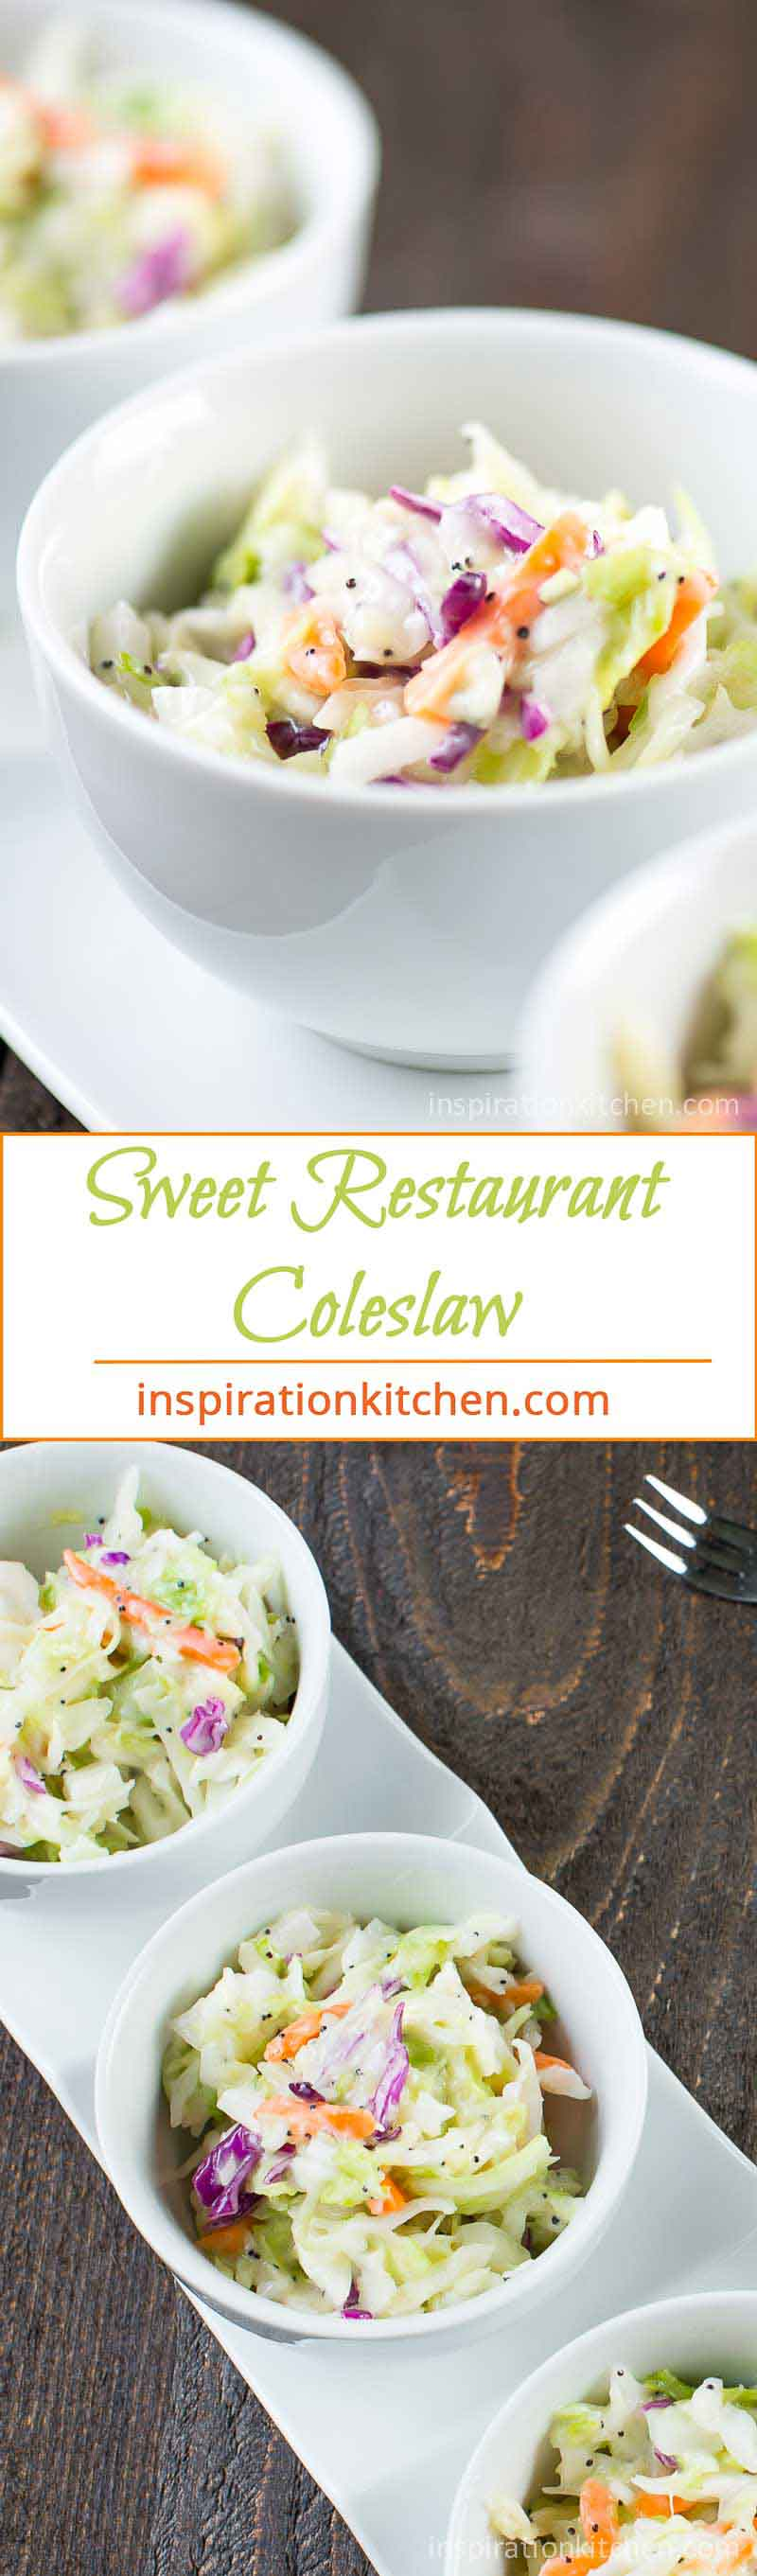 Sweet Restaurant Coleslaw Collage | Inspiration Kitchen